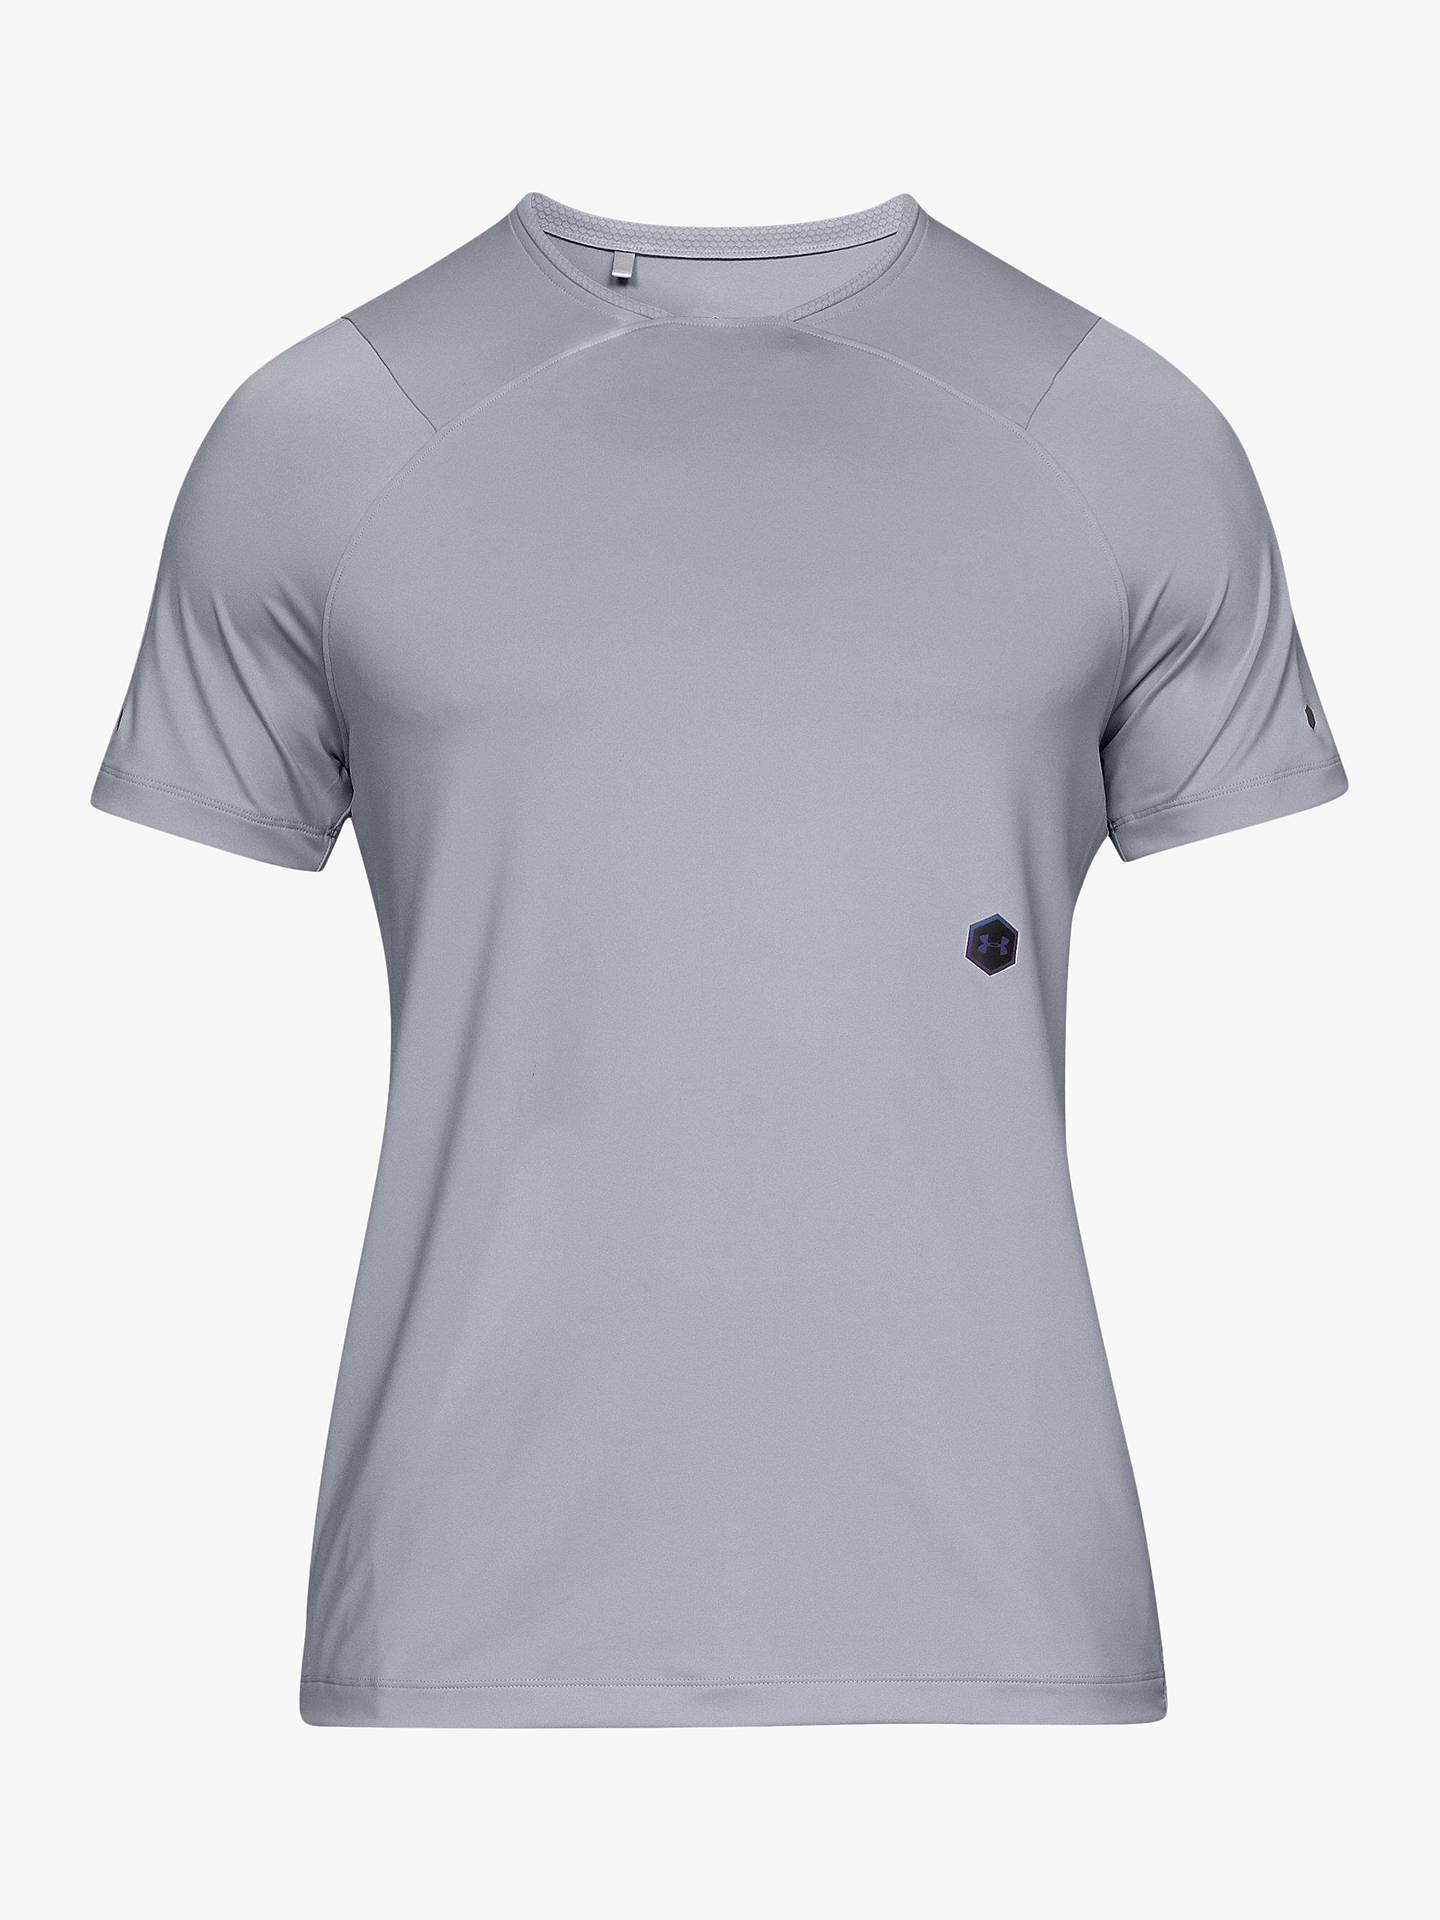 8137117f Buy Under Armour Rush Short Sleeve Training Top, Grey, S Online at  johnlewis.